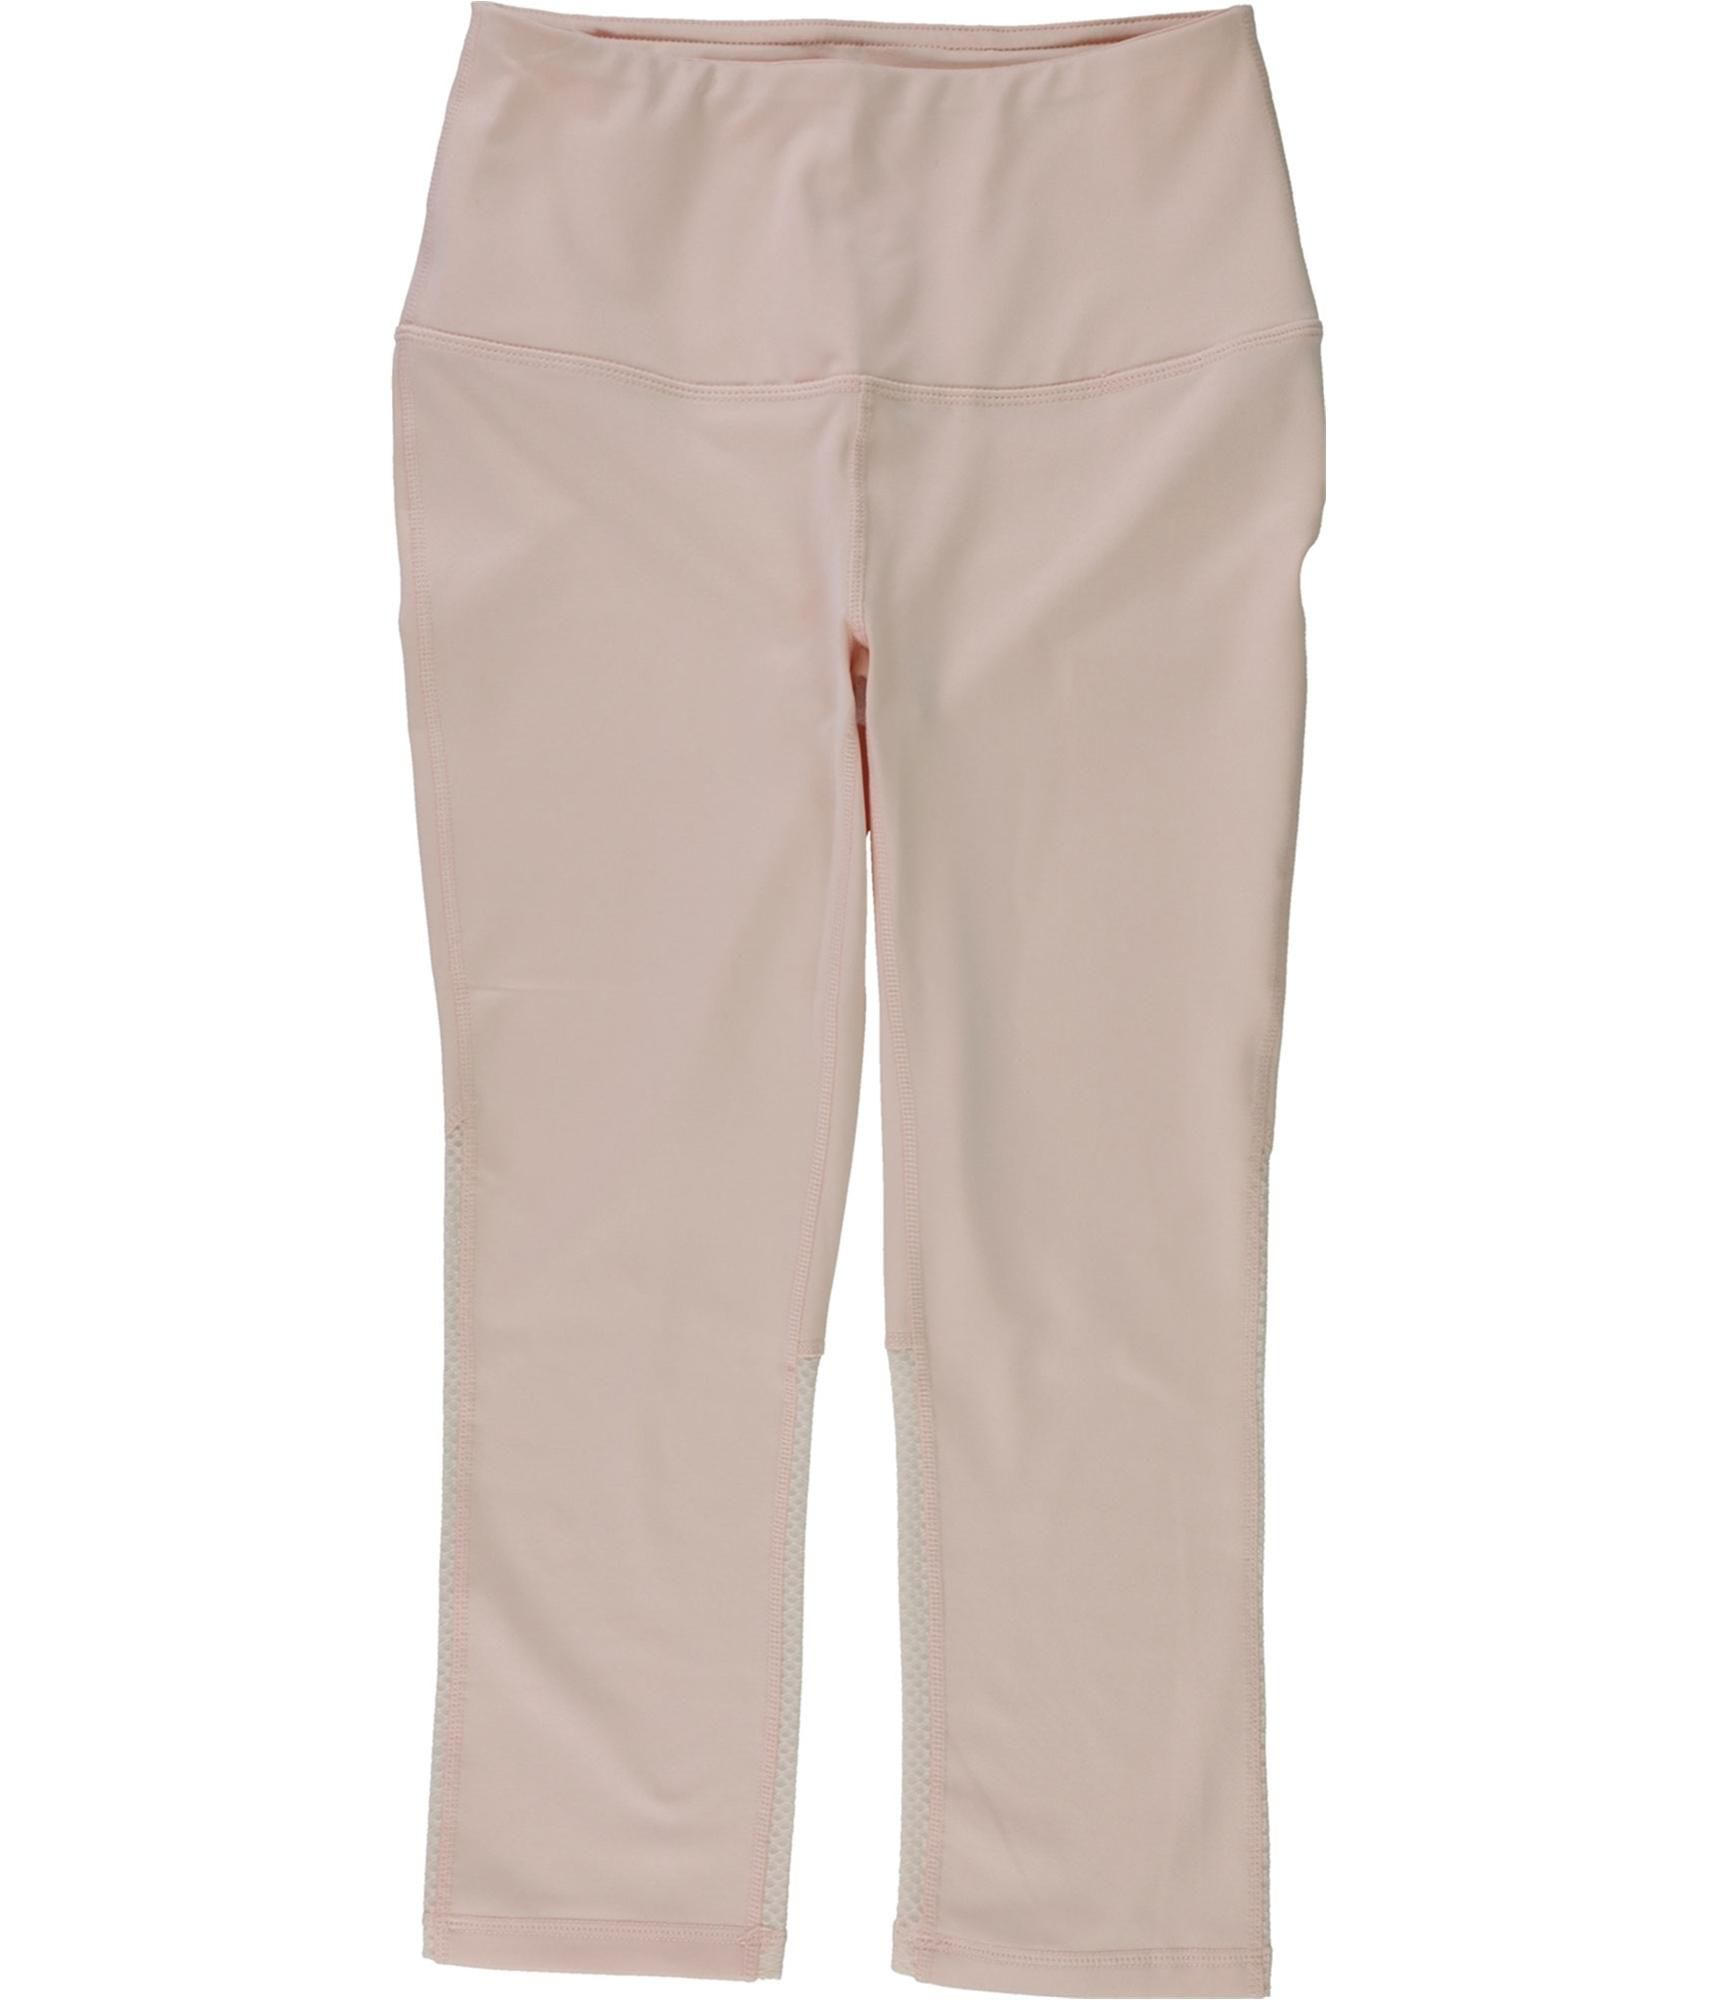 Reebok Womens Align High Rise Capri Compression Athletic Pants, Pink, X-Small